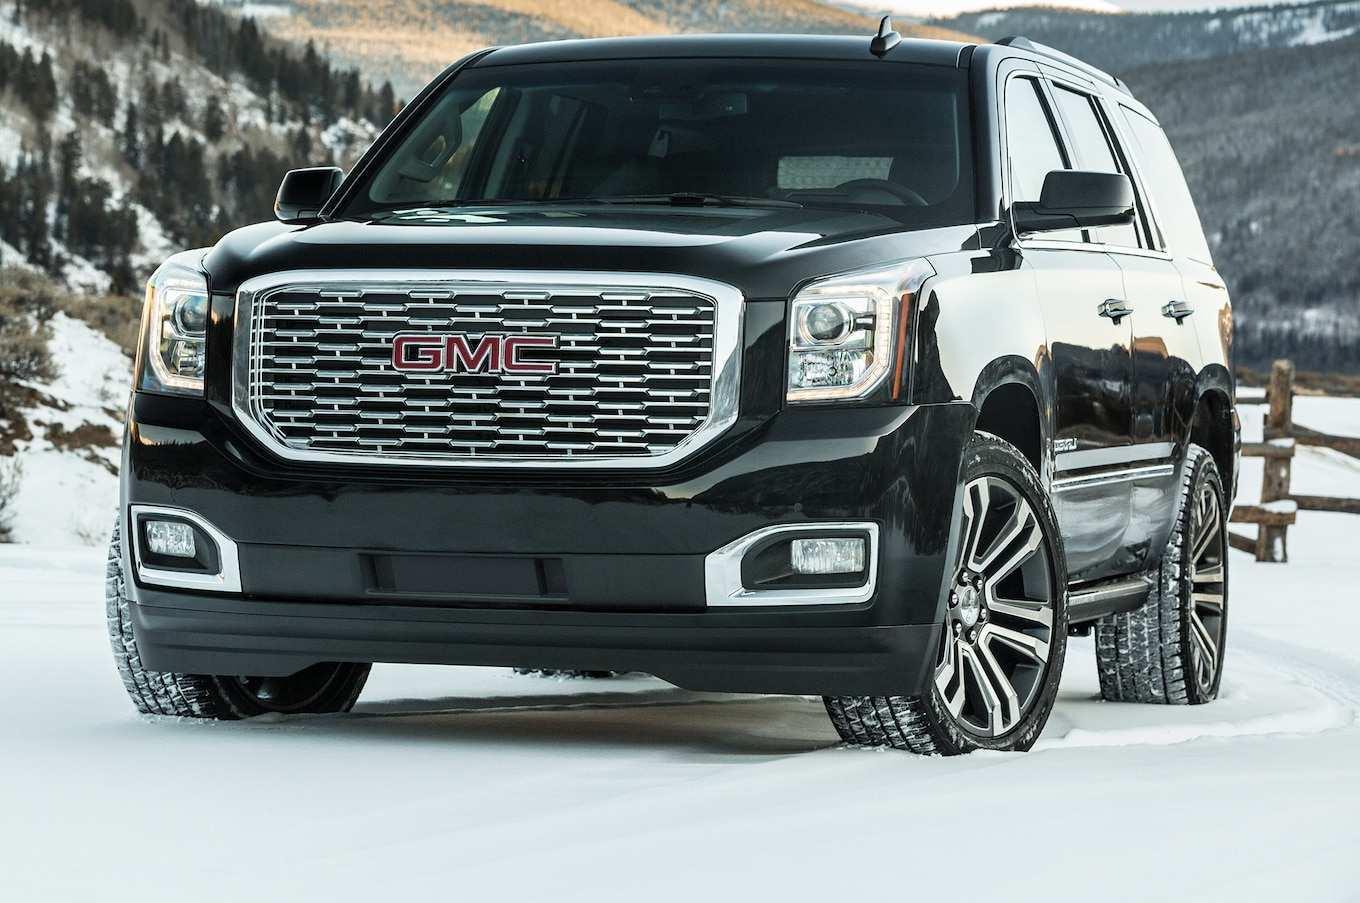 81 Best Review The Gmc Denali Yukon 2019 Redesign New Review by The Gmc Denali Yukon 2019 Redesign